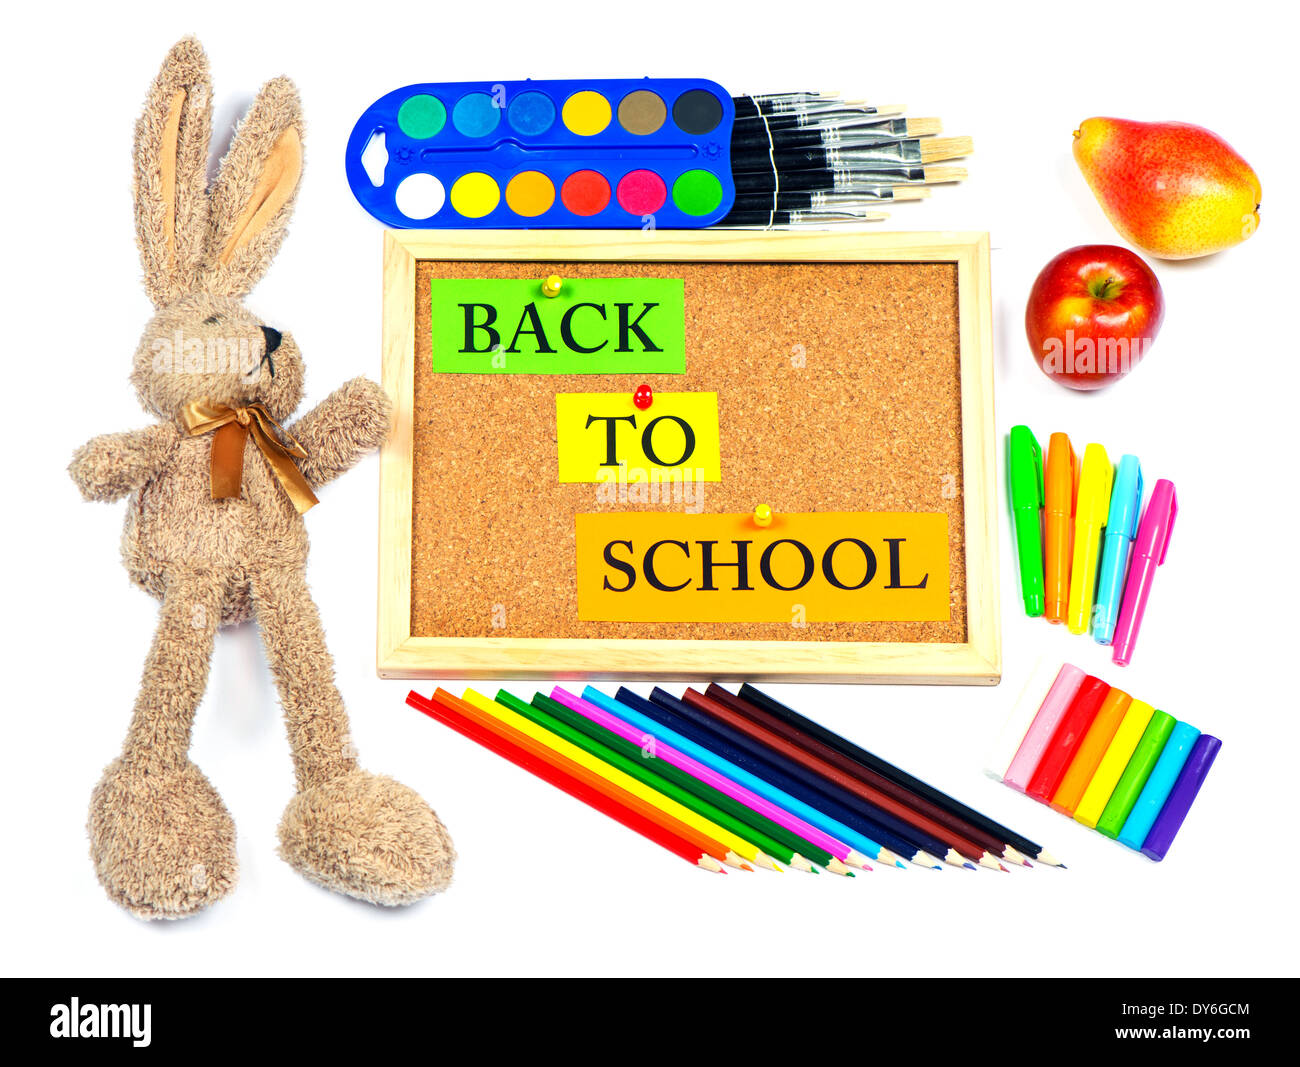 colorful school accesories. back to school background - Stock Image